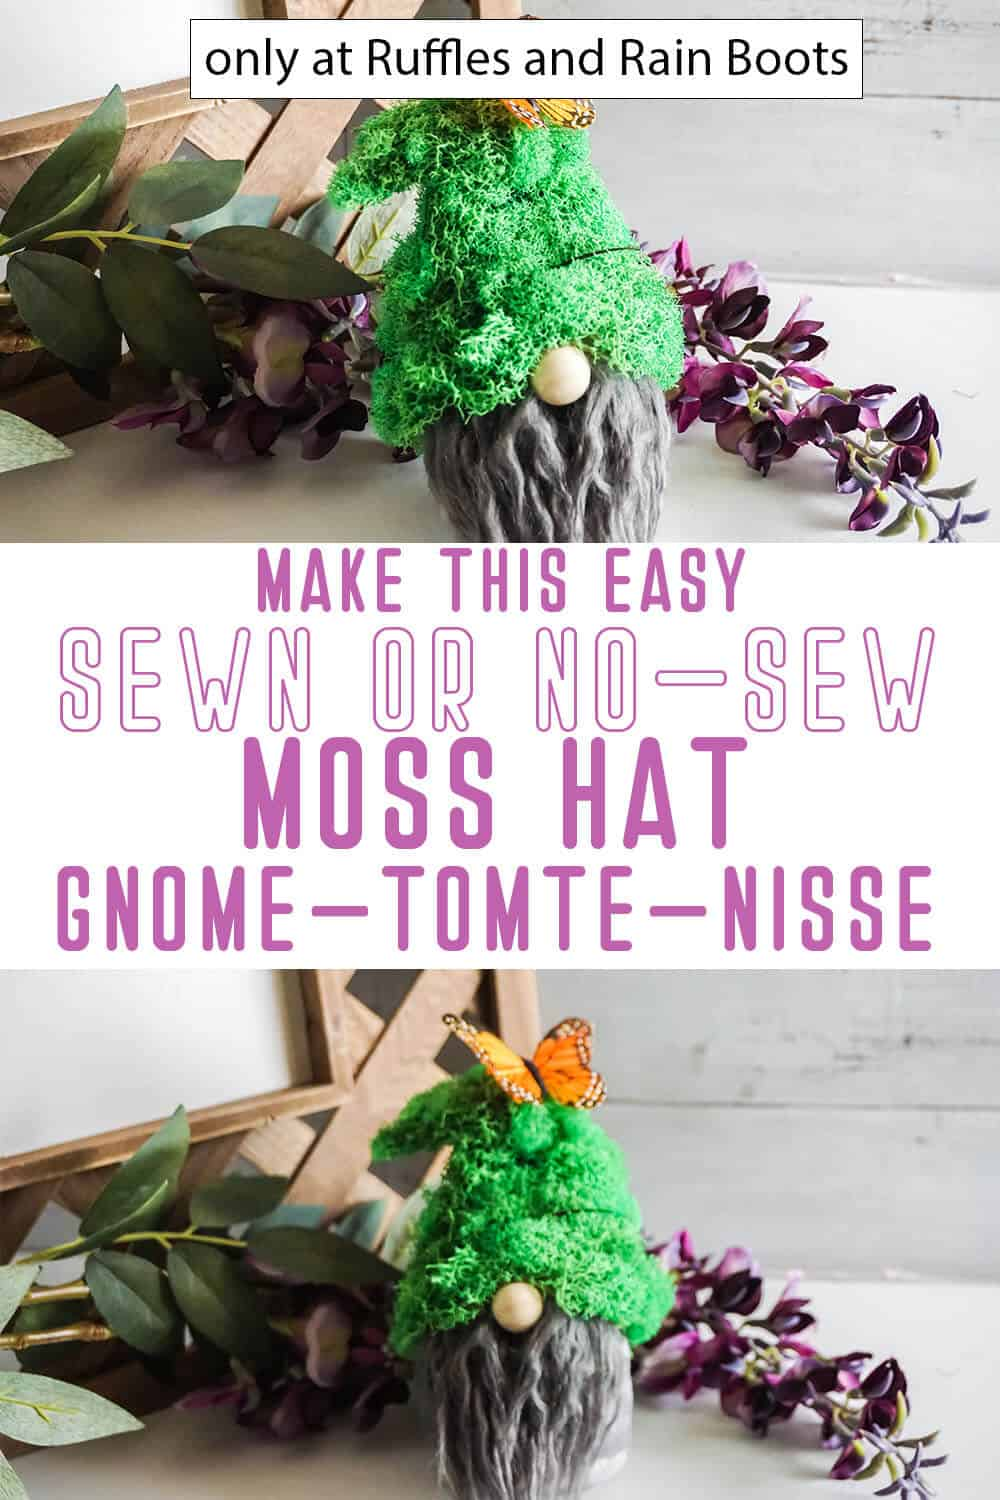 photo collage of moss hat gnome pattern with text which reads make this easy sewn or no-sew moss hat gnome tomte nisse